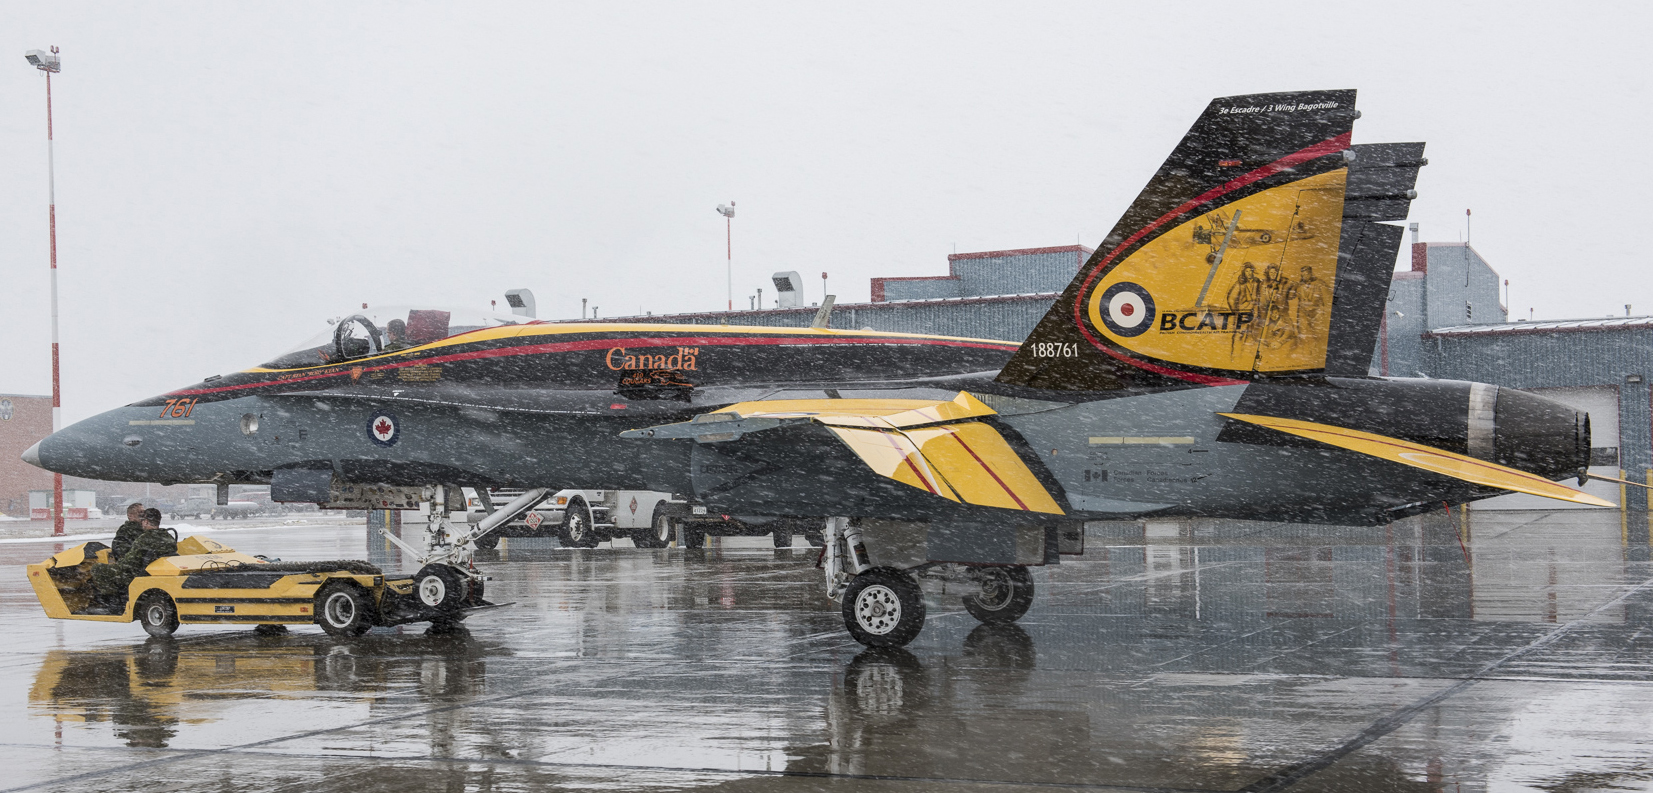 "The 2016 Demonstration Hornet is painted in a design reflecting the British Commonwealth Air Training Plan, one of the greatest training programs the world has ever seen. The yellow echoes the yellow-painted training aircraft used by the BCATP while the black conveys a message about the darkness of the Second World War. And the red represents the training plan – ""the motif of the flame against the darkness"". PHOTO: Corporal I. Thompson, CK02-2016-0278-001"